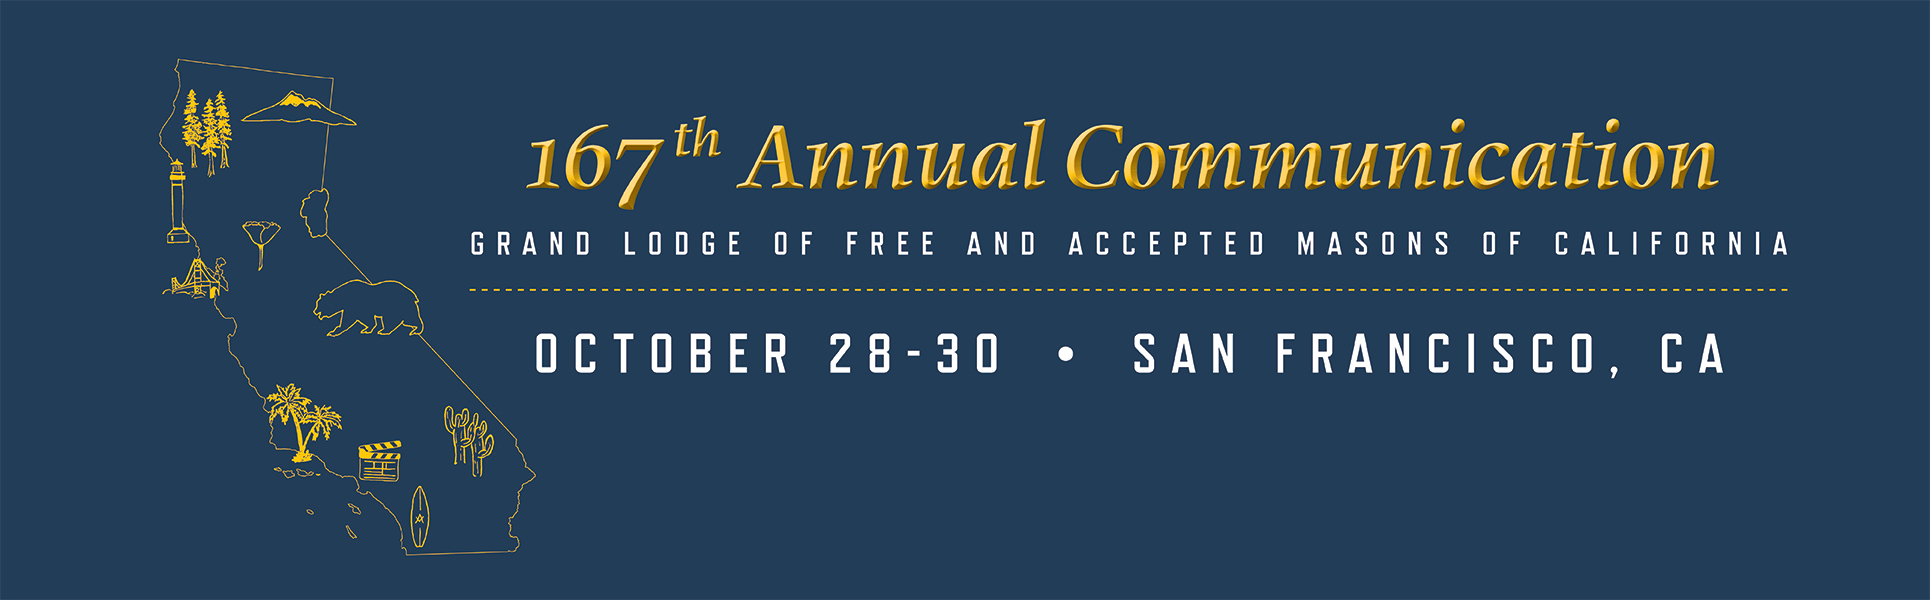 167th Annual Communication